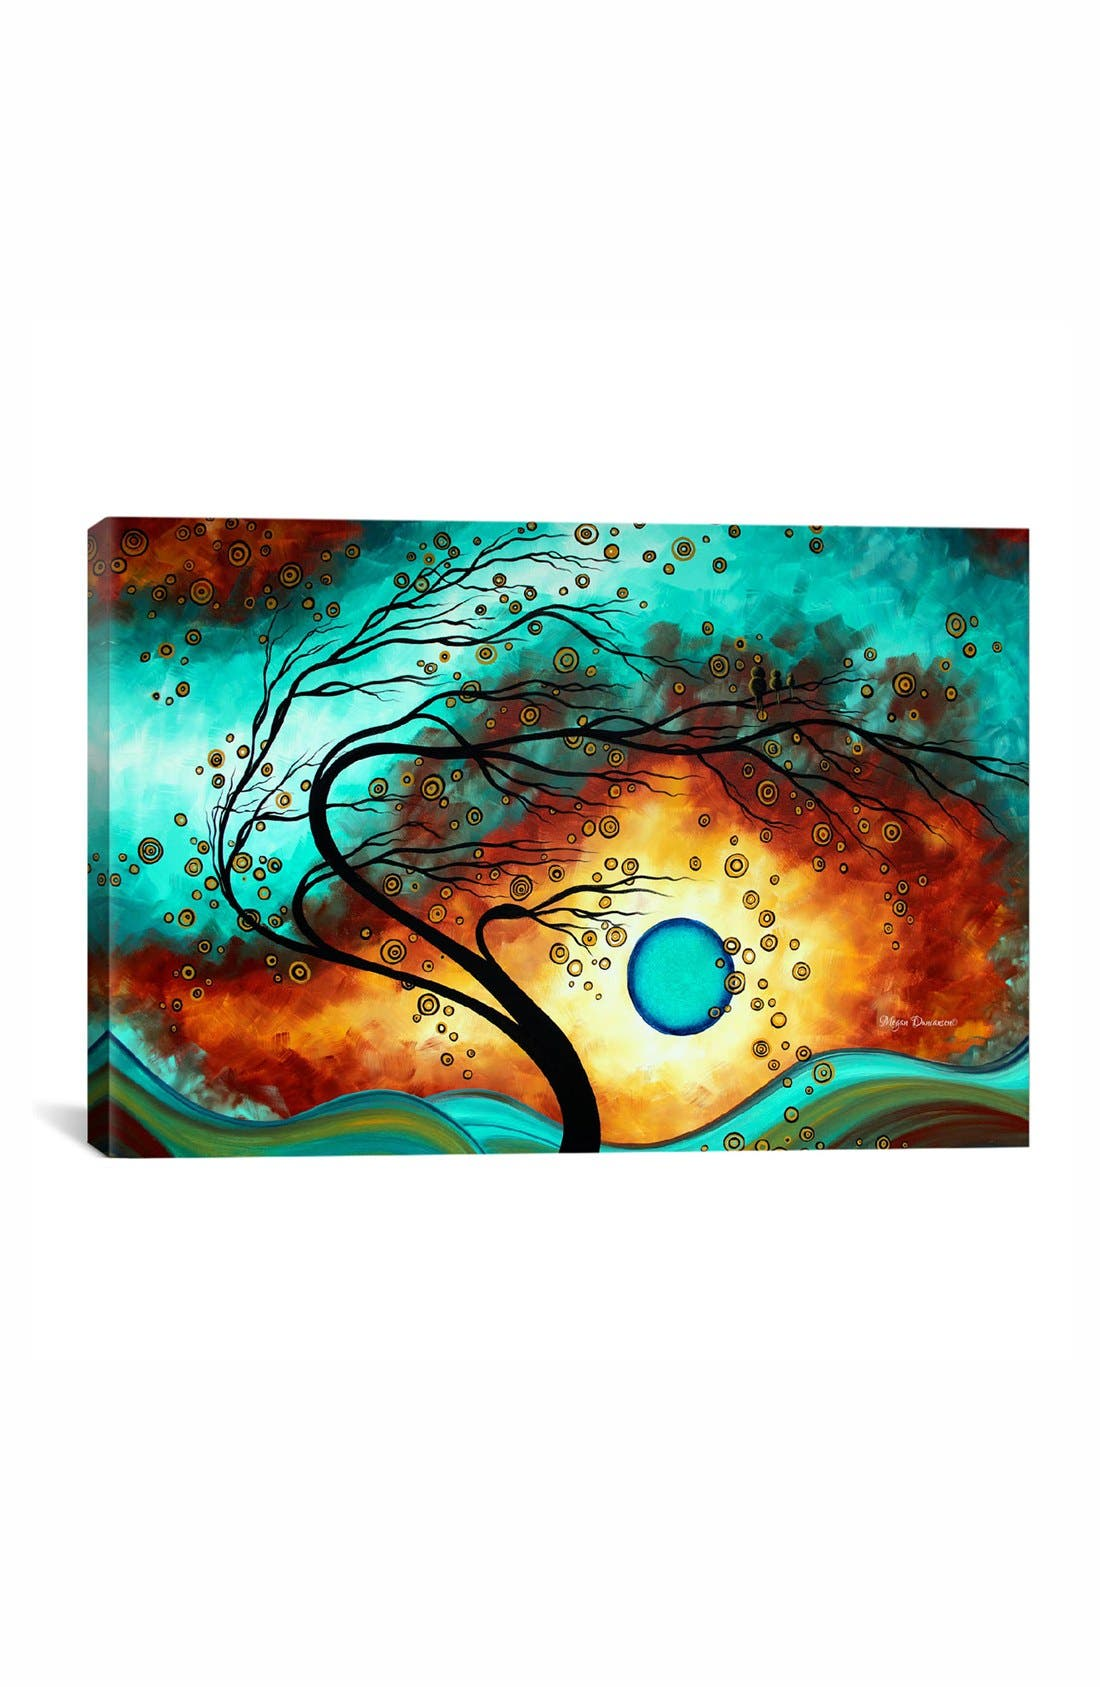 Main Image - iCanvas 'Family Joy - Megan Duncanson' Giclée Print Canvas Art